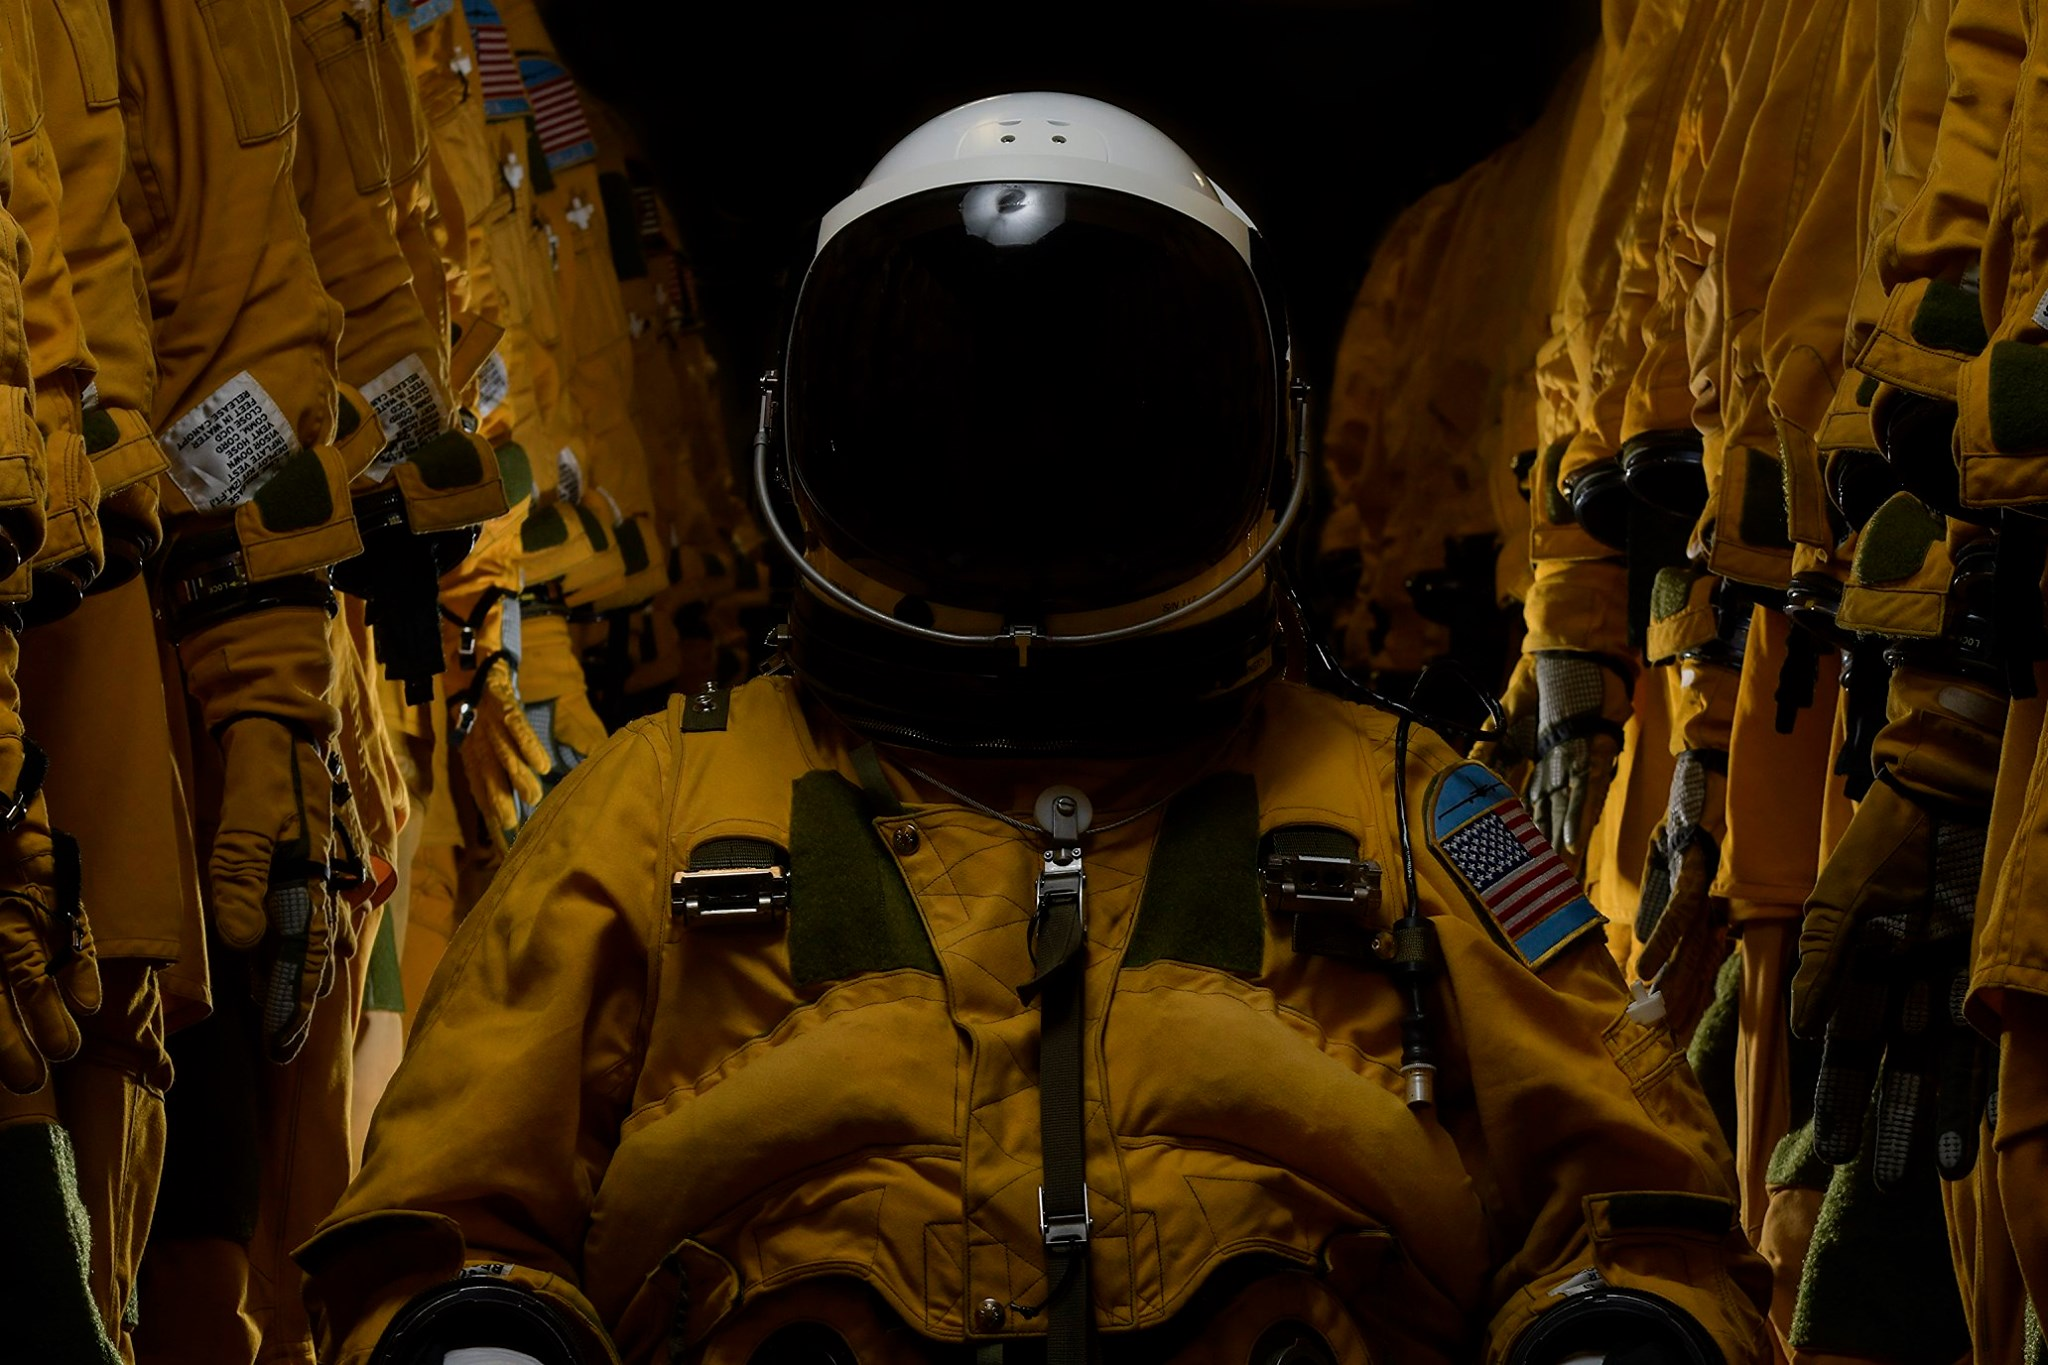 A U-2 Dragon Lady pilot poses for a portrait inside a pressure suit at Beale Air Force Base, Calif., Oct. 31, 2019. Pilots who fly into the rim of the atmosphere require a specialized and custom-fit suit to keep them at a normal altitude in extreme elevations. (Tech. Sgt. Alexandre Montes/Air Force)